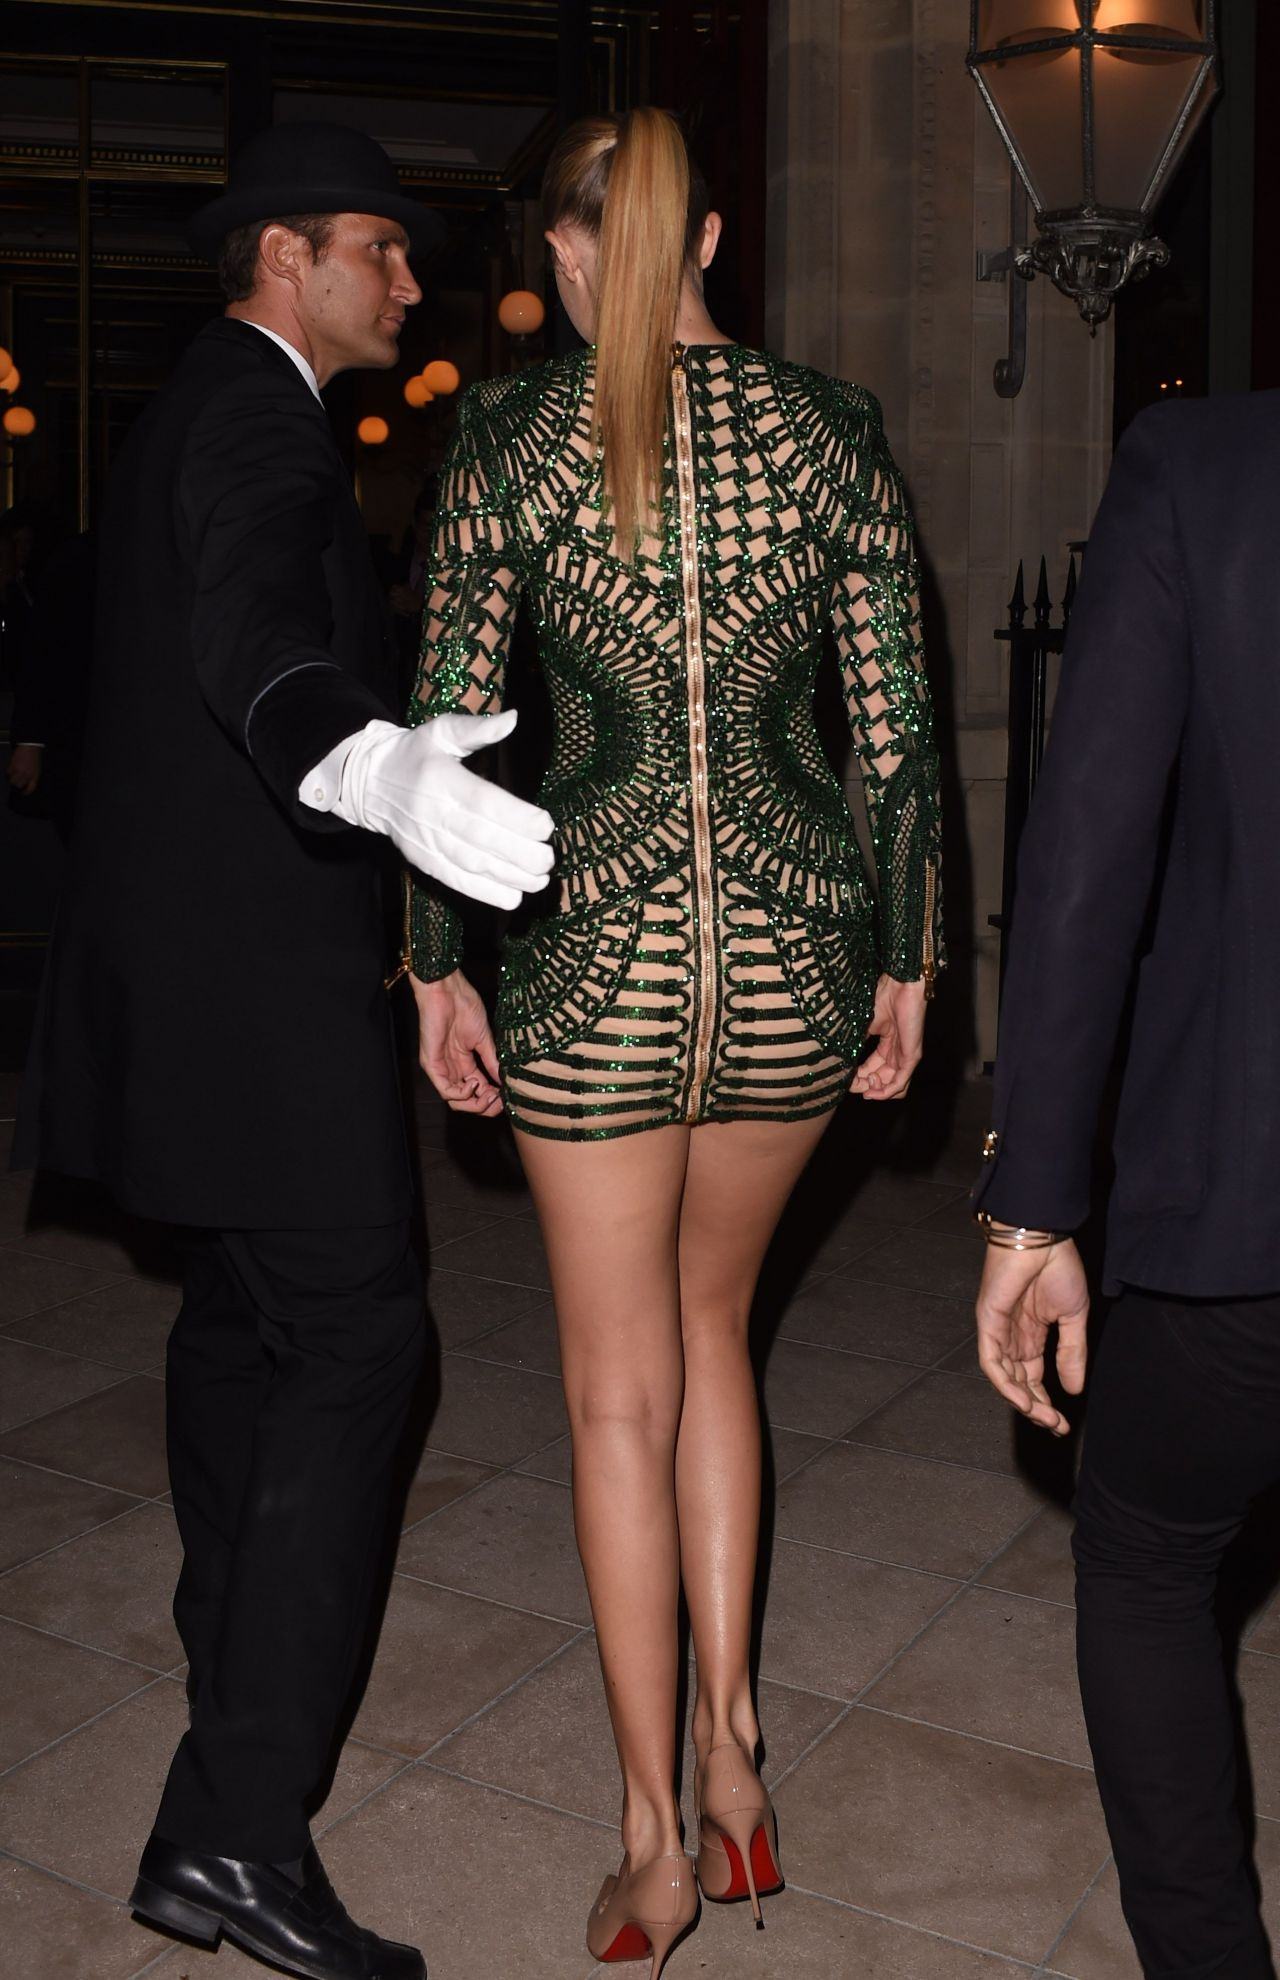 Gigi Hadid in Skin-tight Mini Dress